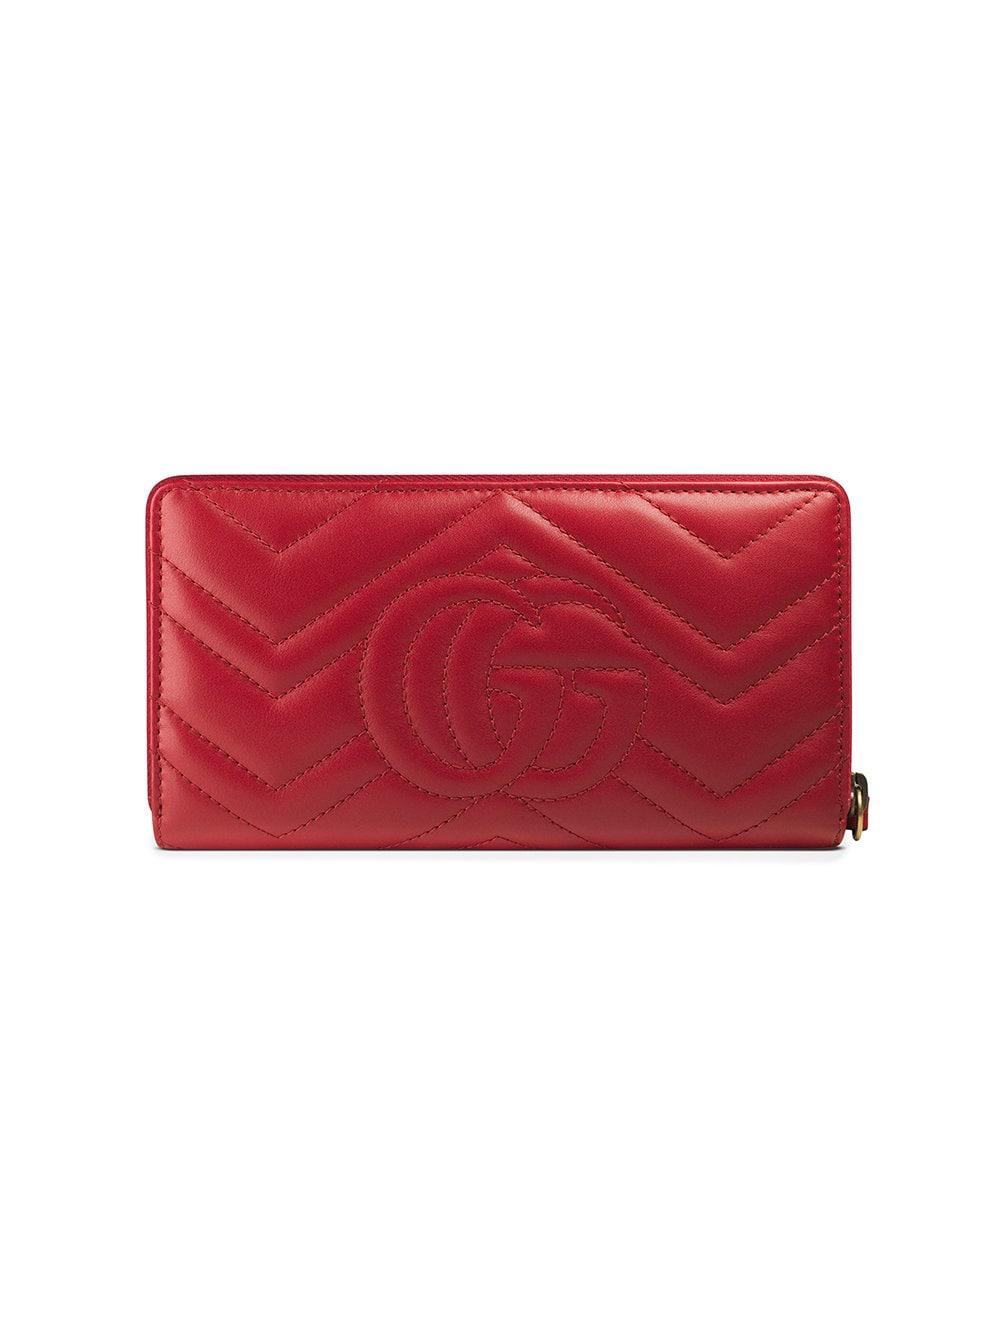 9601bcb2863 Lyst - Gucci GG Marmont Matelassé Wallet in Red